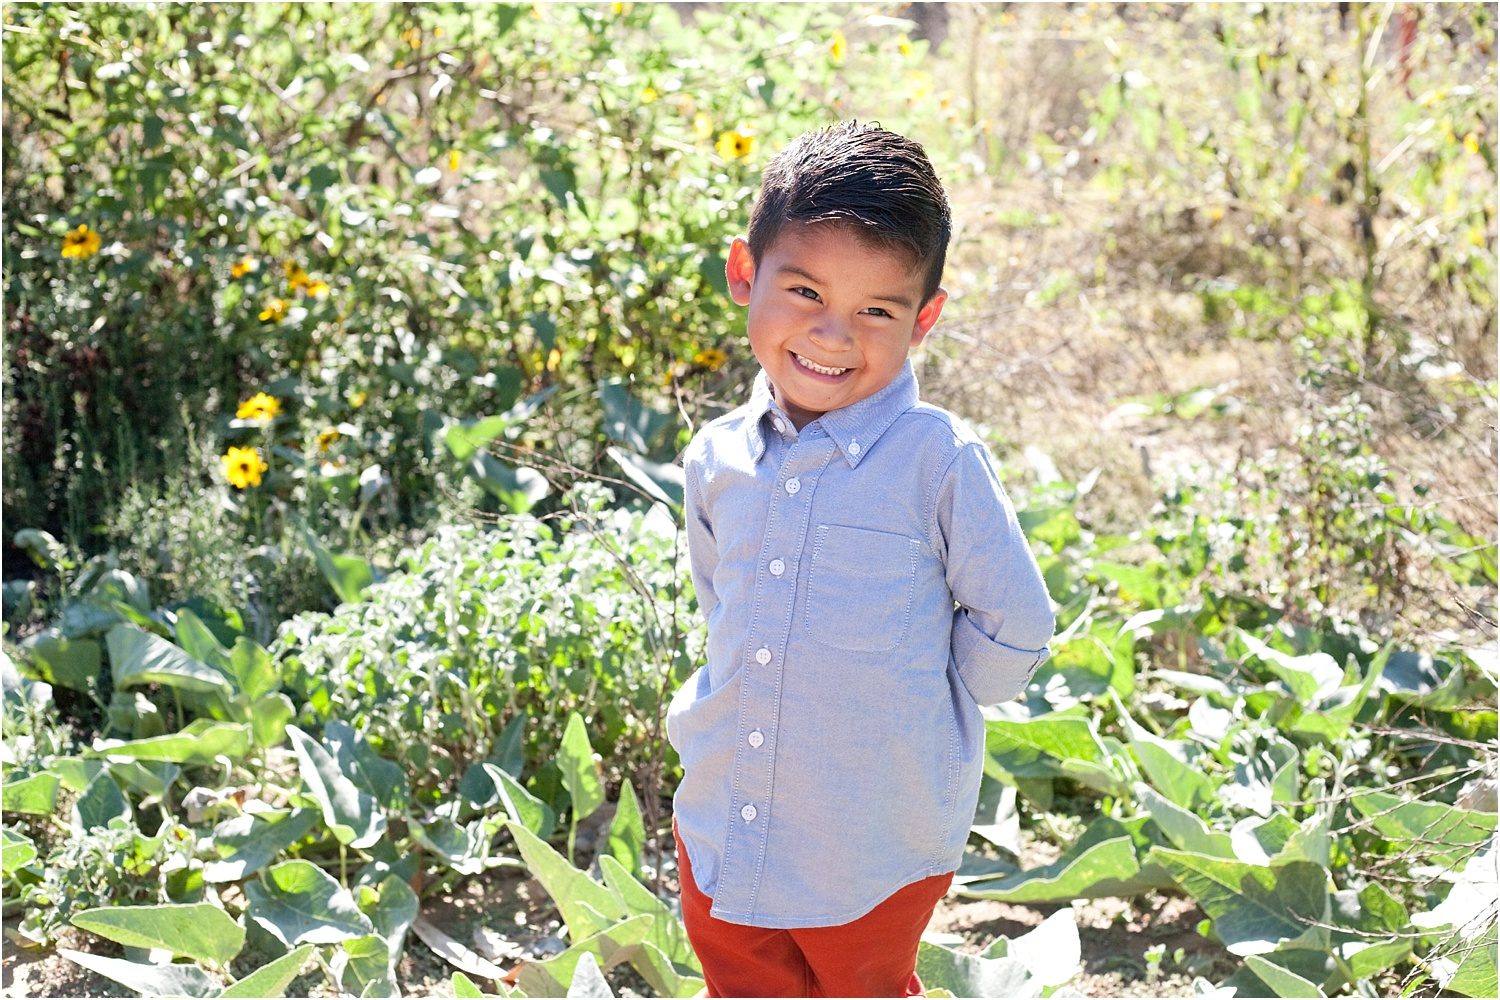 smiling boy in a field - How to do Portrait Photography in Bright Midday Sun